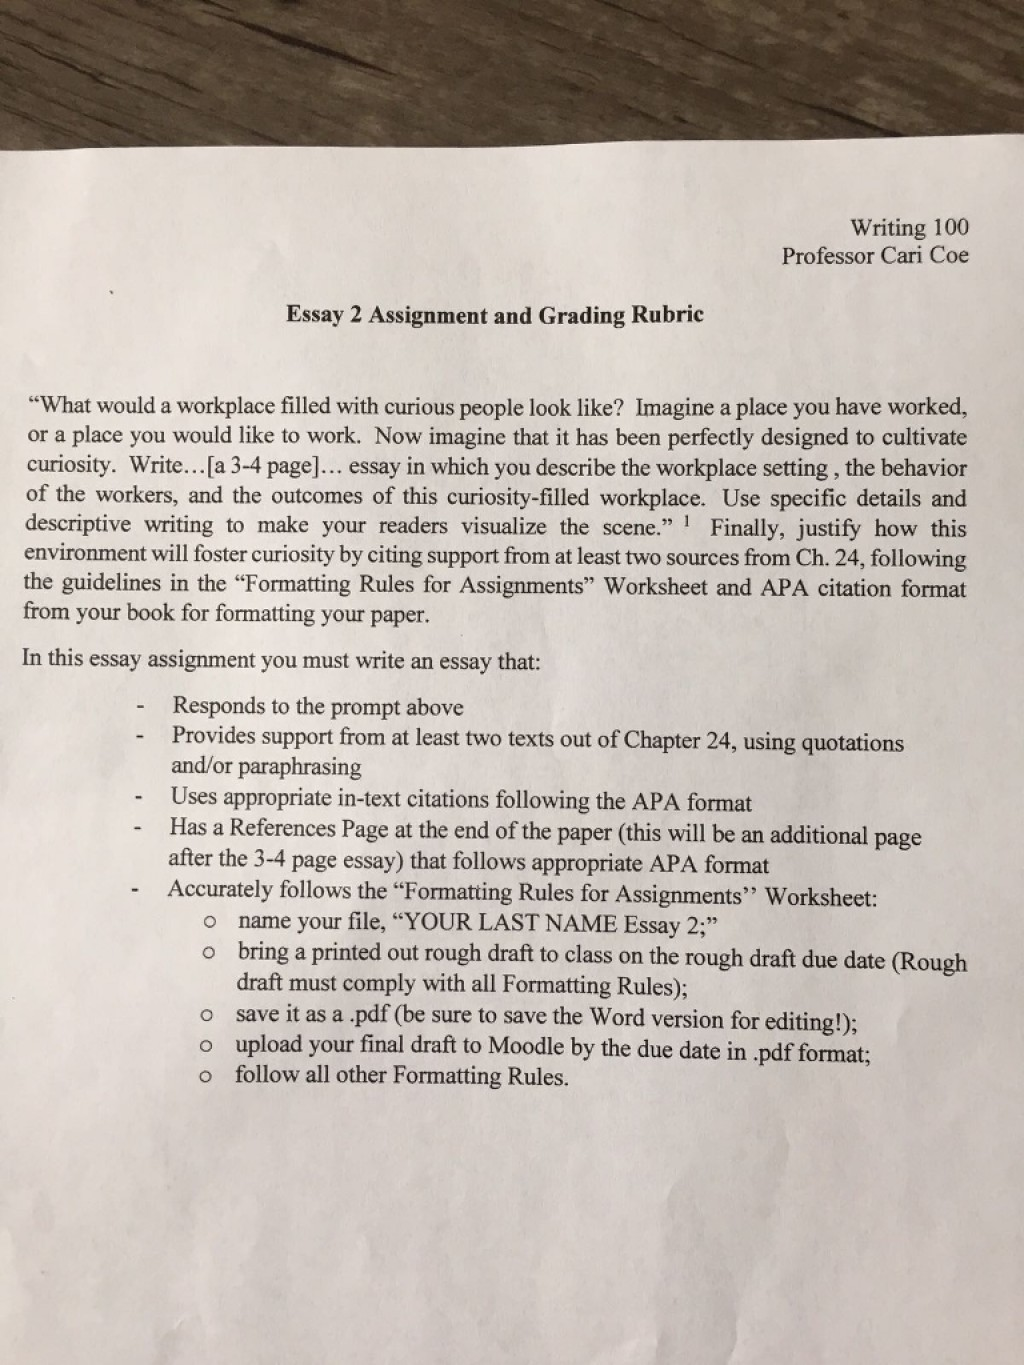 016 Media2f8e32f8e373b01 Ba65f02721362fphpz6tn1c Essay Example Amazing Professor Teaching College Writing On My In French Large